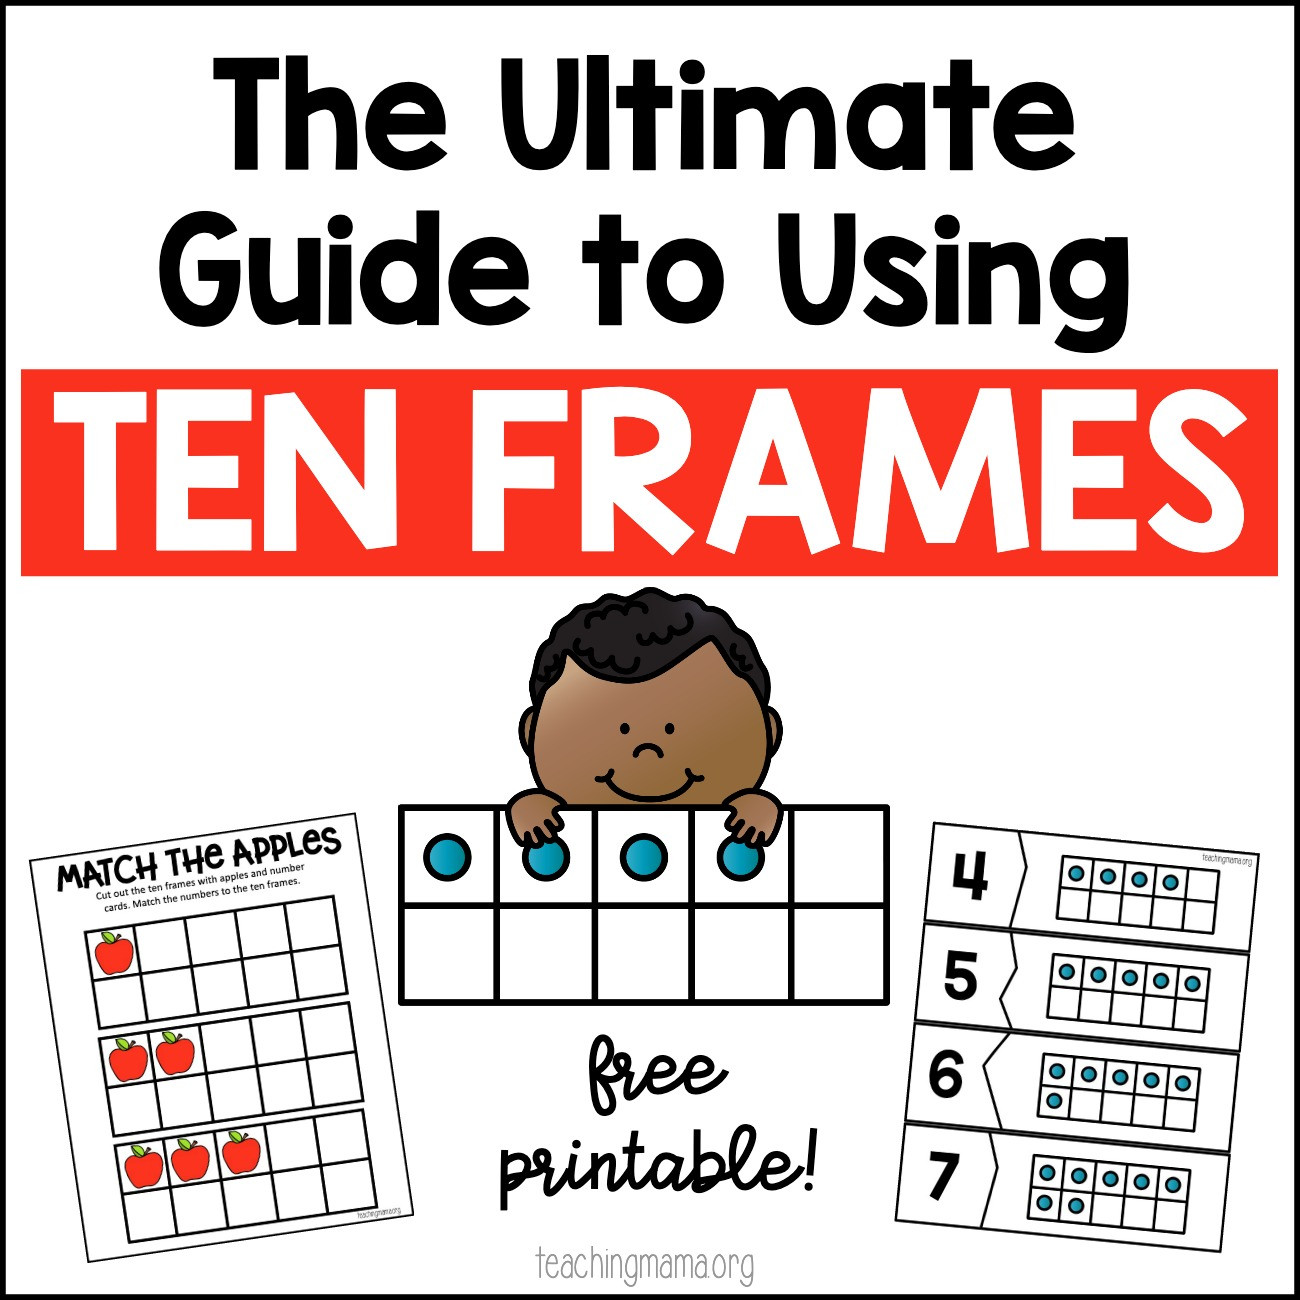 Ten Frame Worksheets First Grade the Ultimate Guide to Using Ten Frames